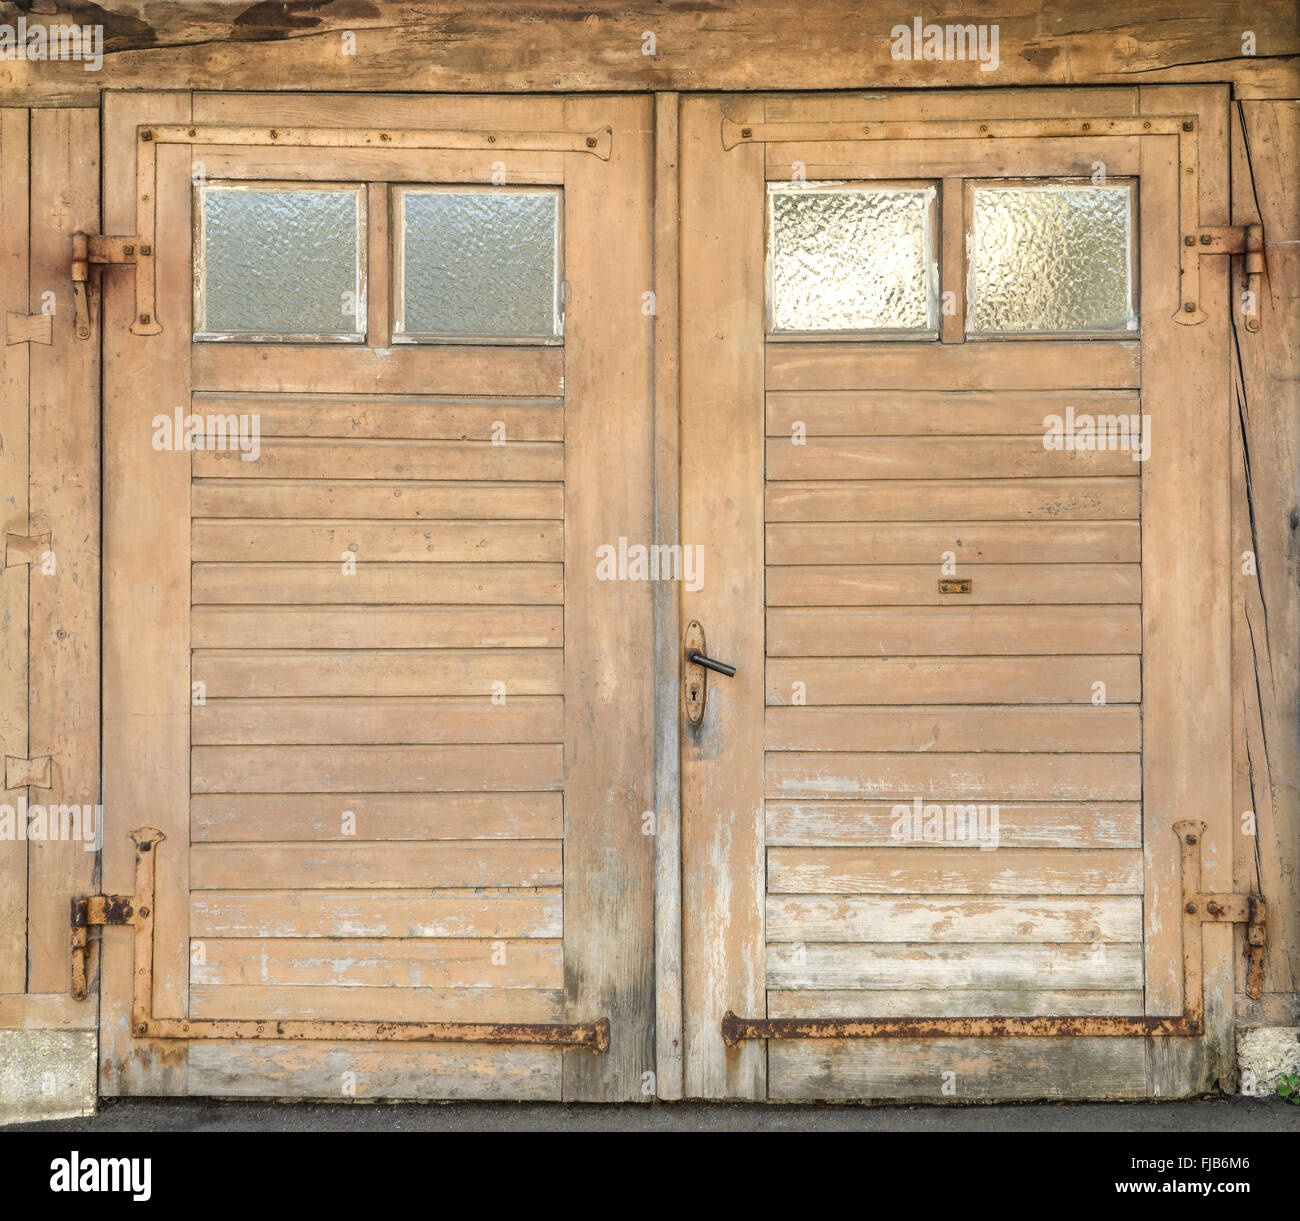 small garage doorOld light brown dirty and weathered wooden garage door with four